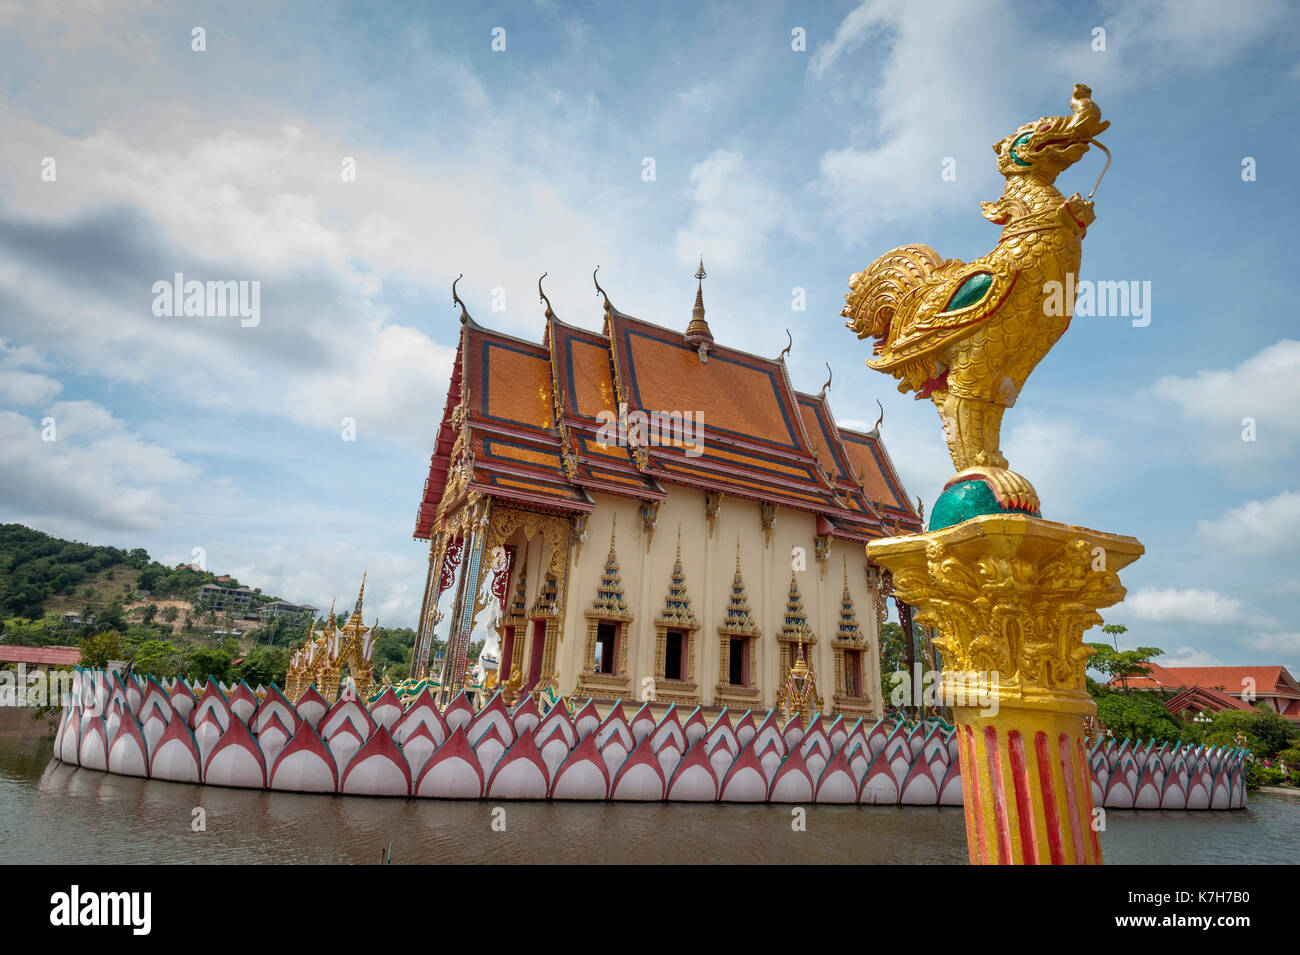 Cat sleeps on the tiles at Wat Plai Leam, a Buddhist temple on the island of Ko Samui, Thailand. - Stock Image